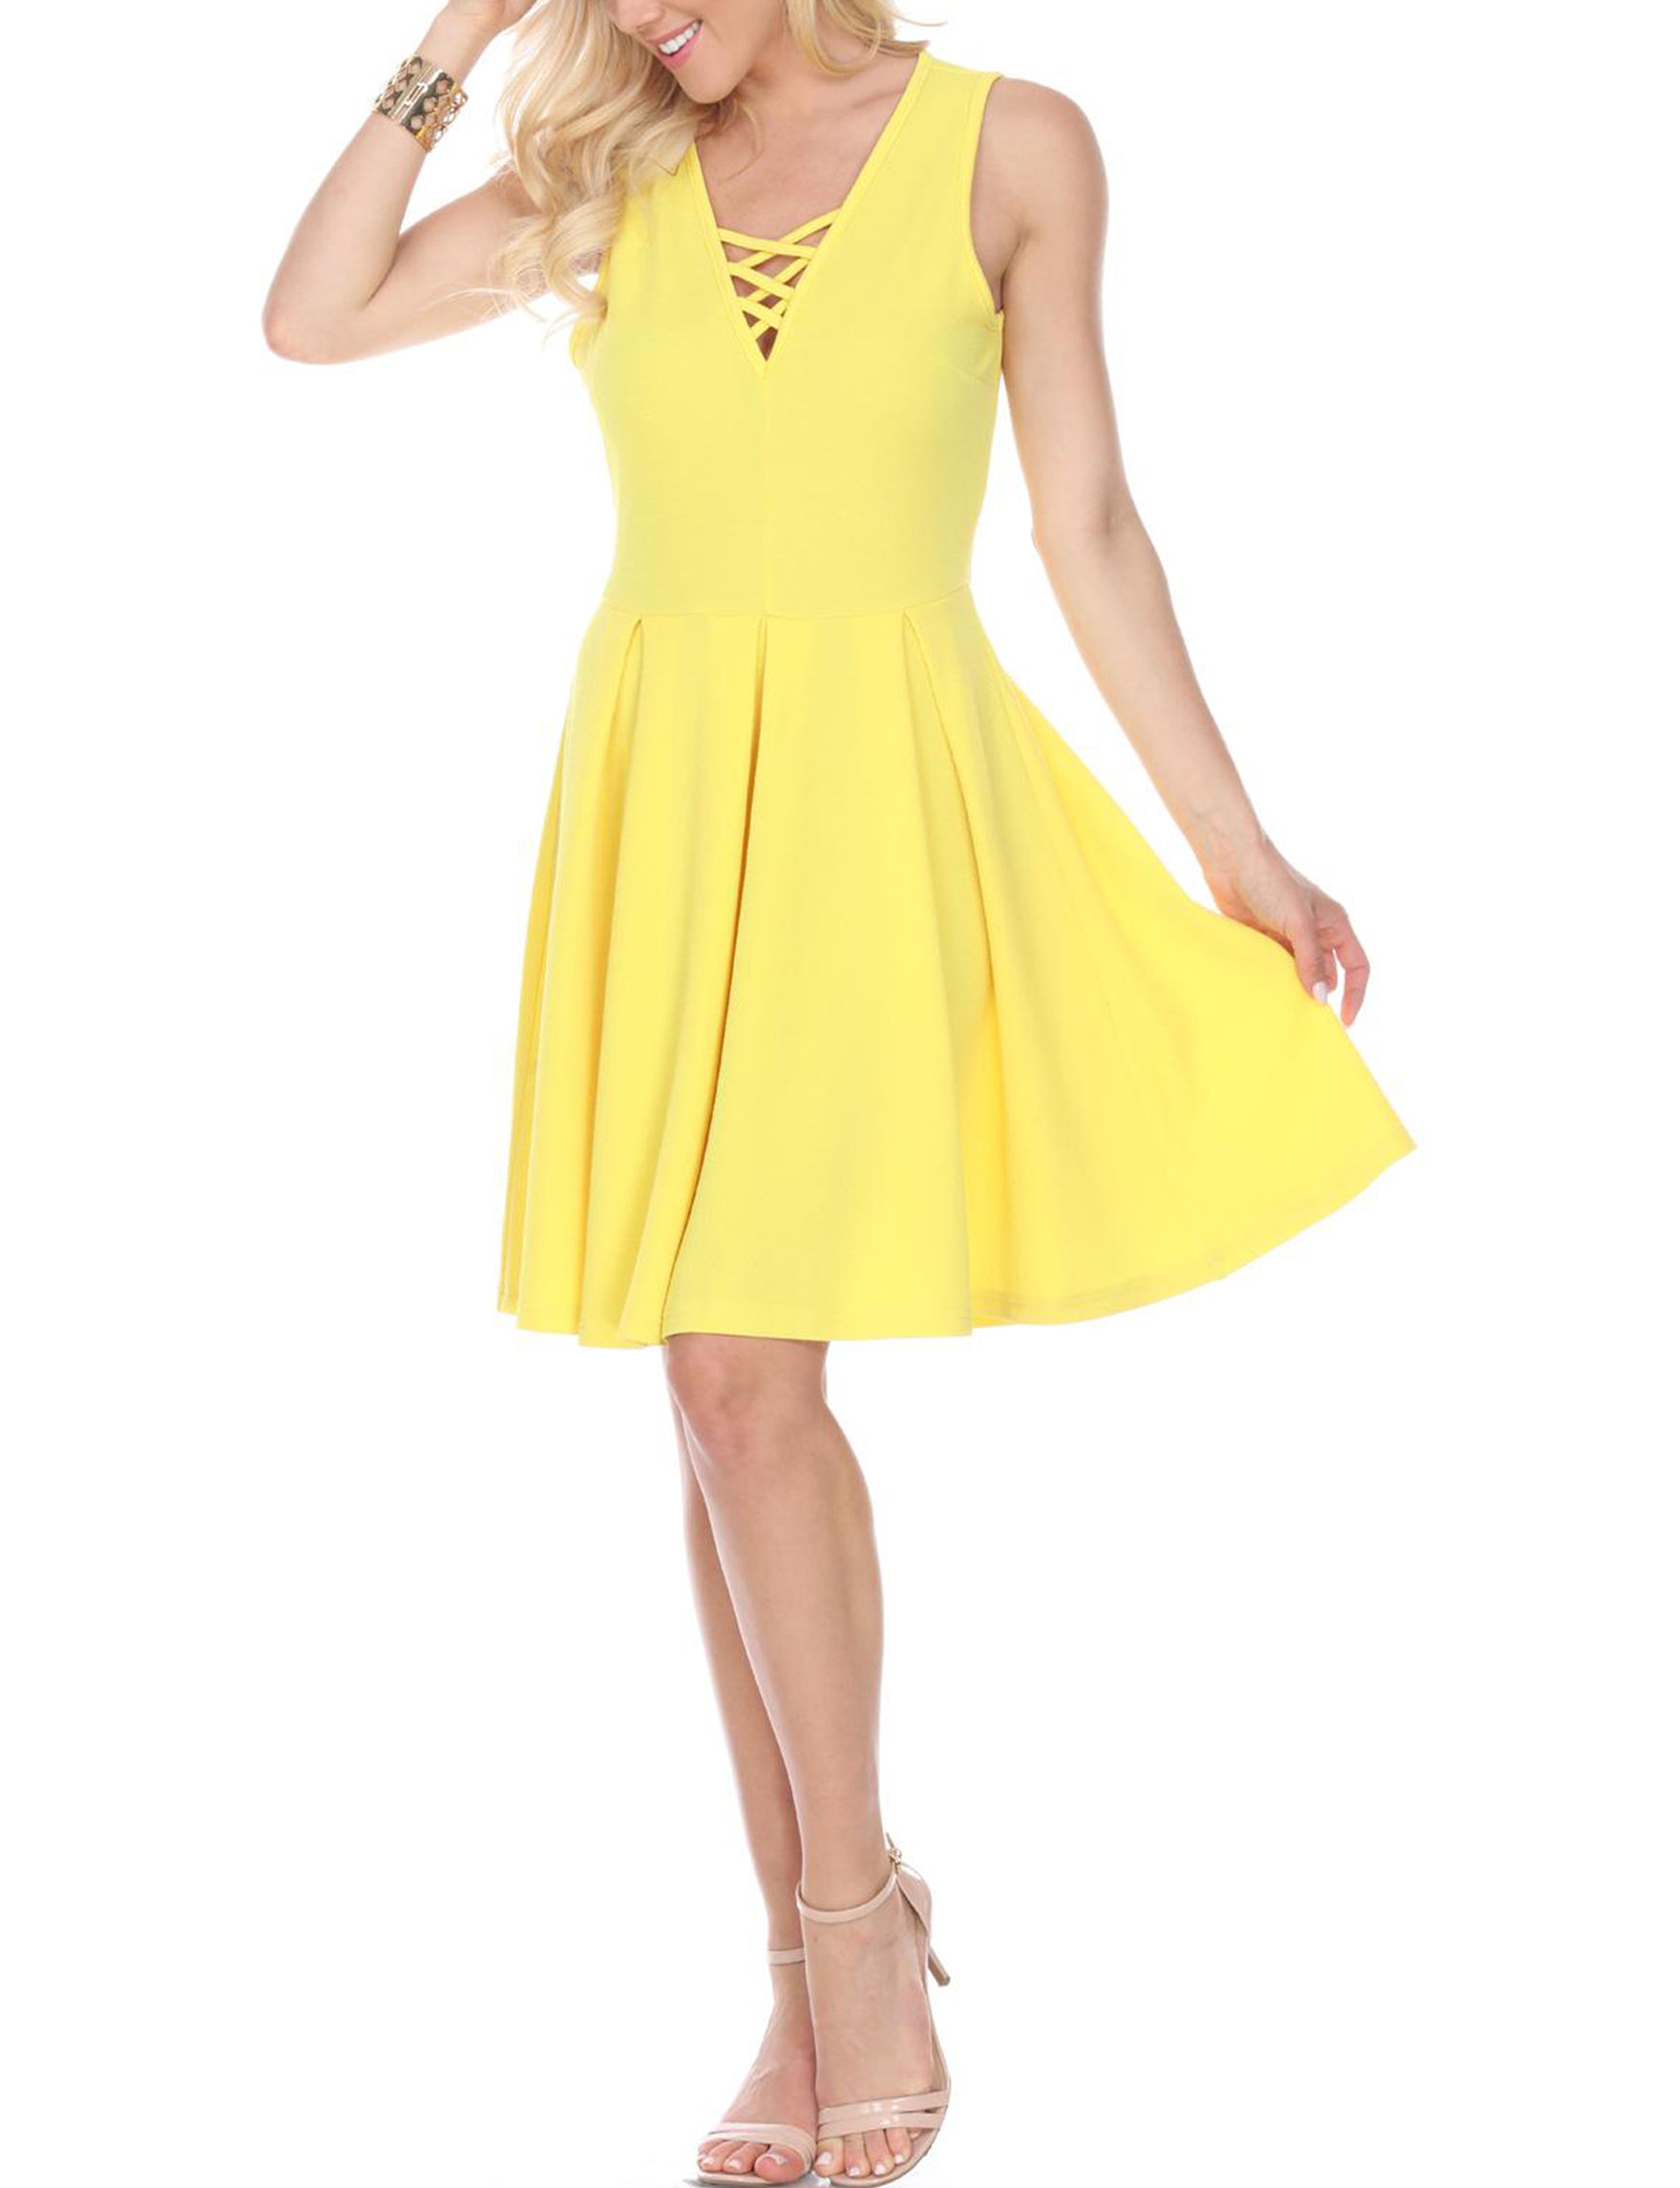 White Mark Yellow Everyday & Casual Fit & Flare Dresses